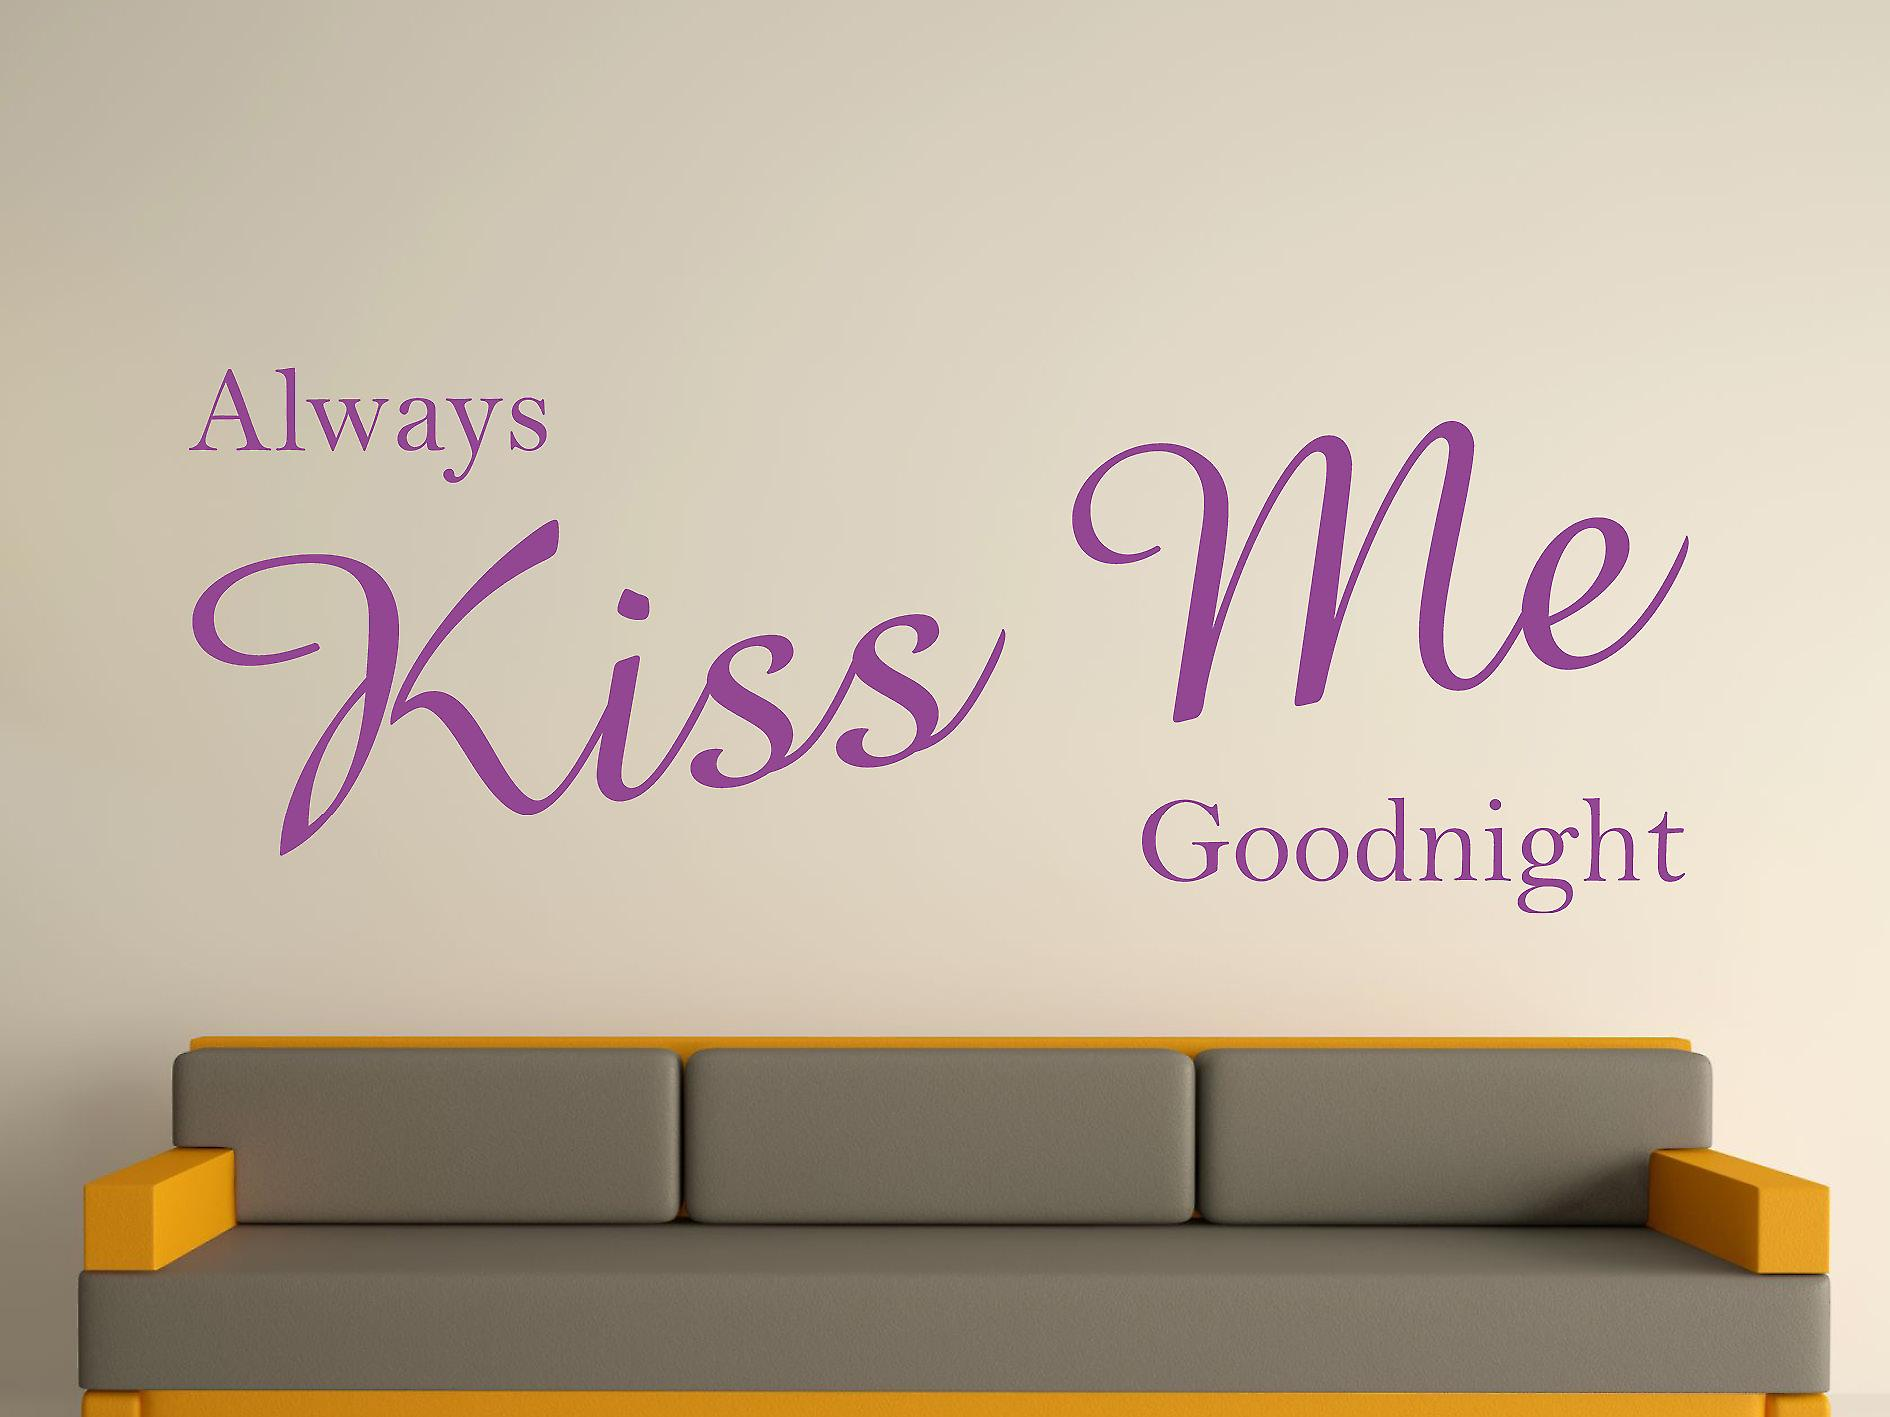 Always Kiss Me Goodnight Wall Art Sticker - Purple